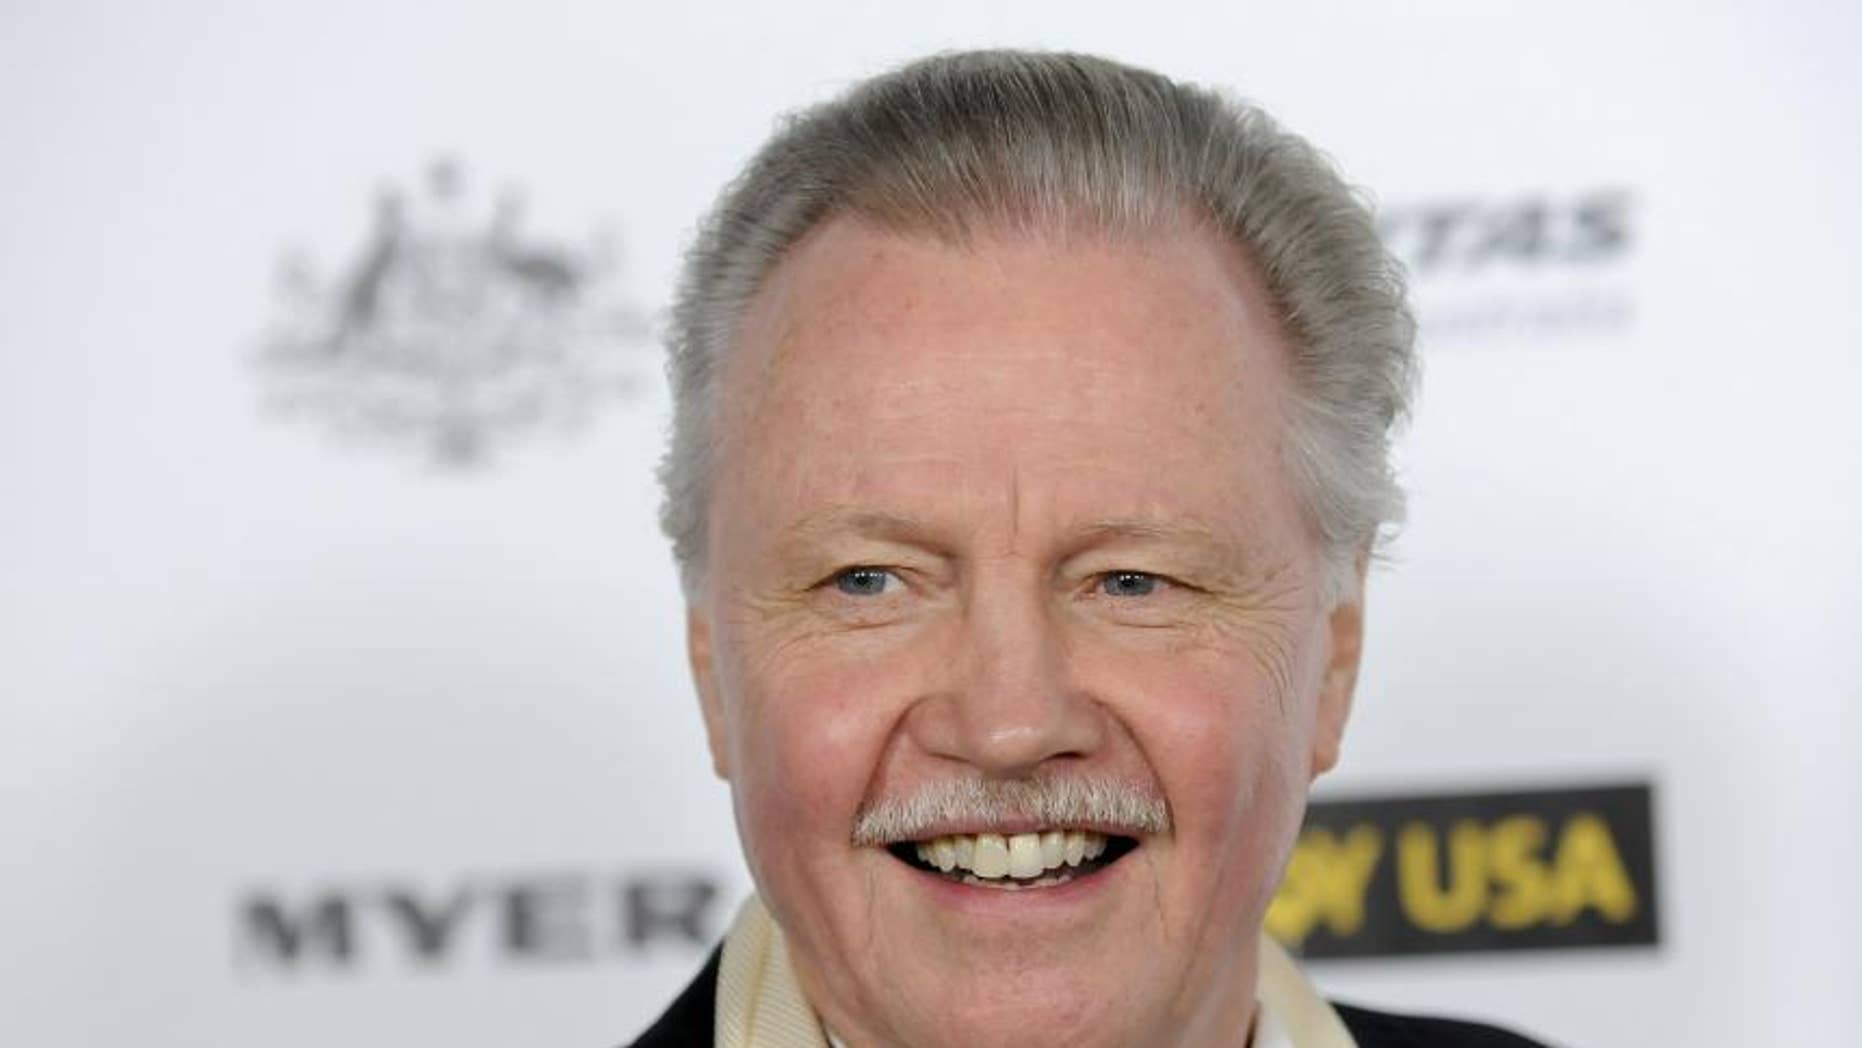 Jon Voight is a vocal conservative in Hollywood and a supporter of the president.